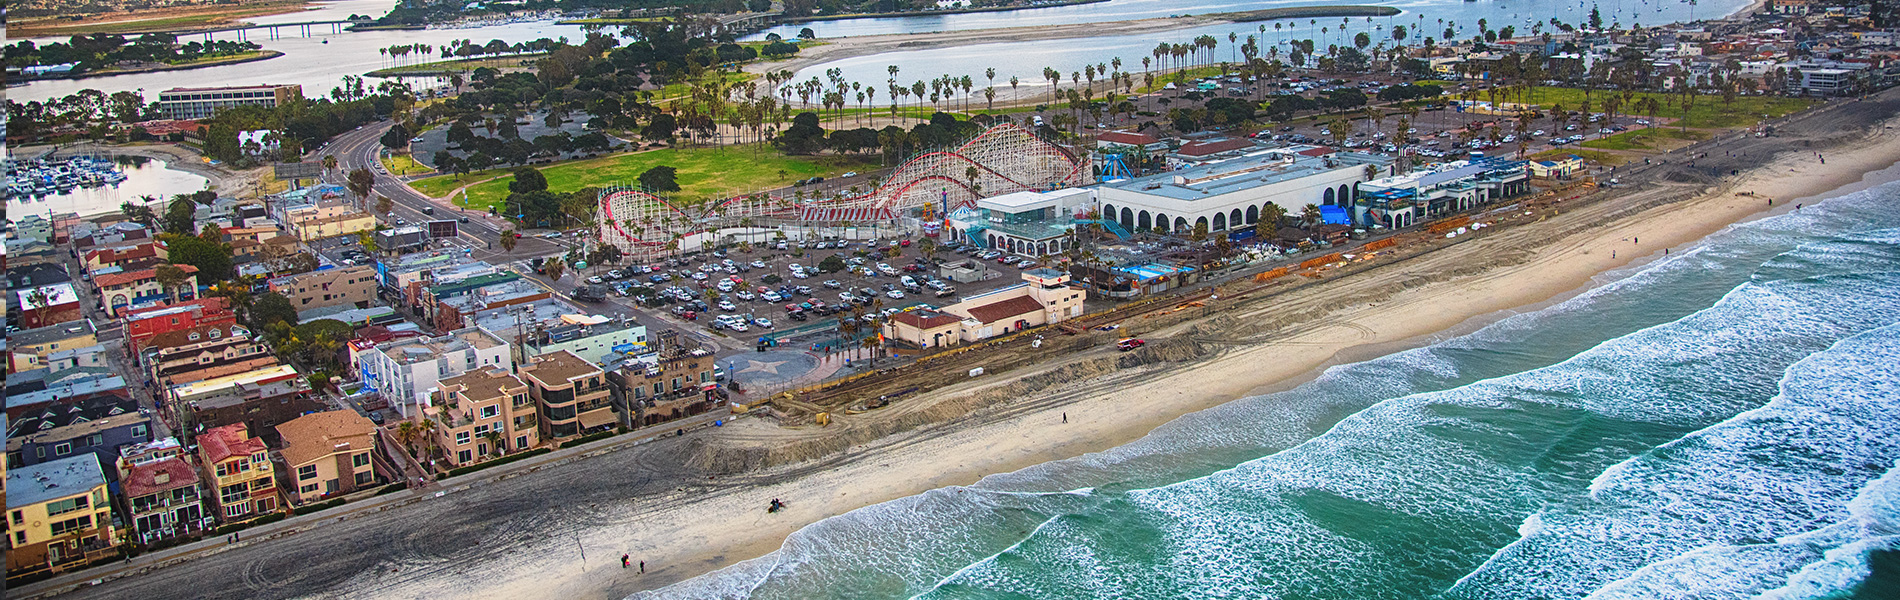 Beaches and Entertainment in San Diego California